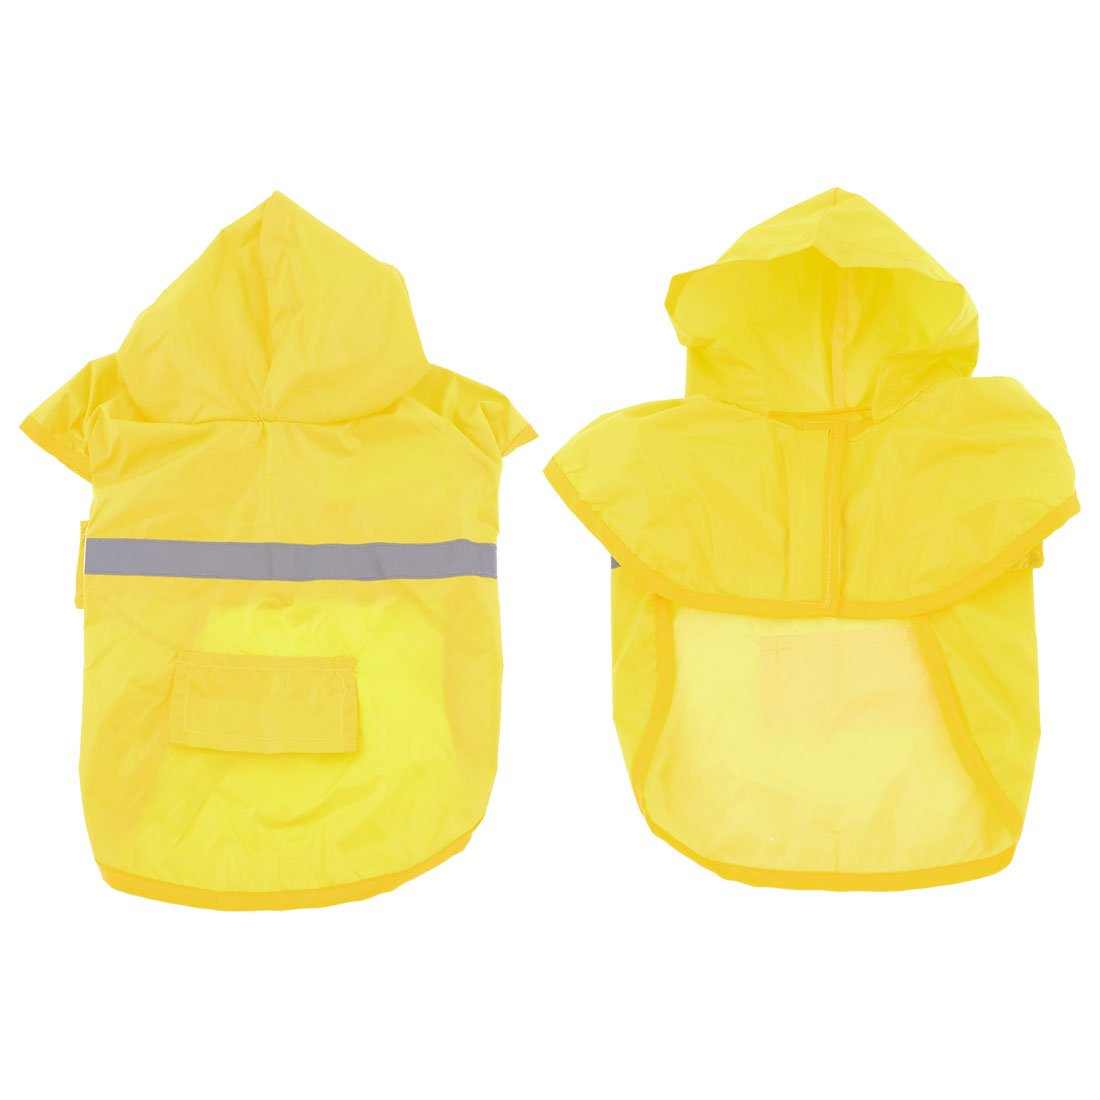 Uxcell Pet Hook Loop Closure Hooded Water Resistant Raincoat, Large, Yellow